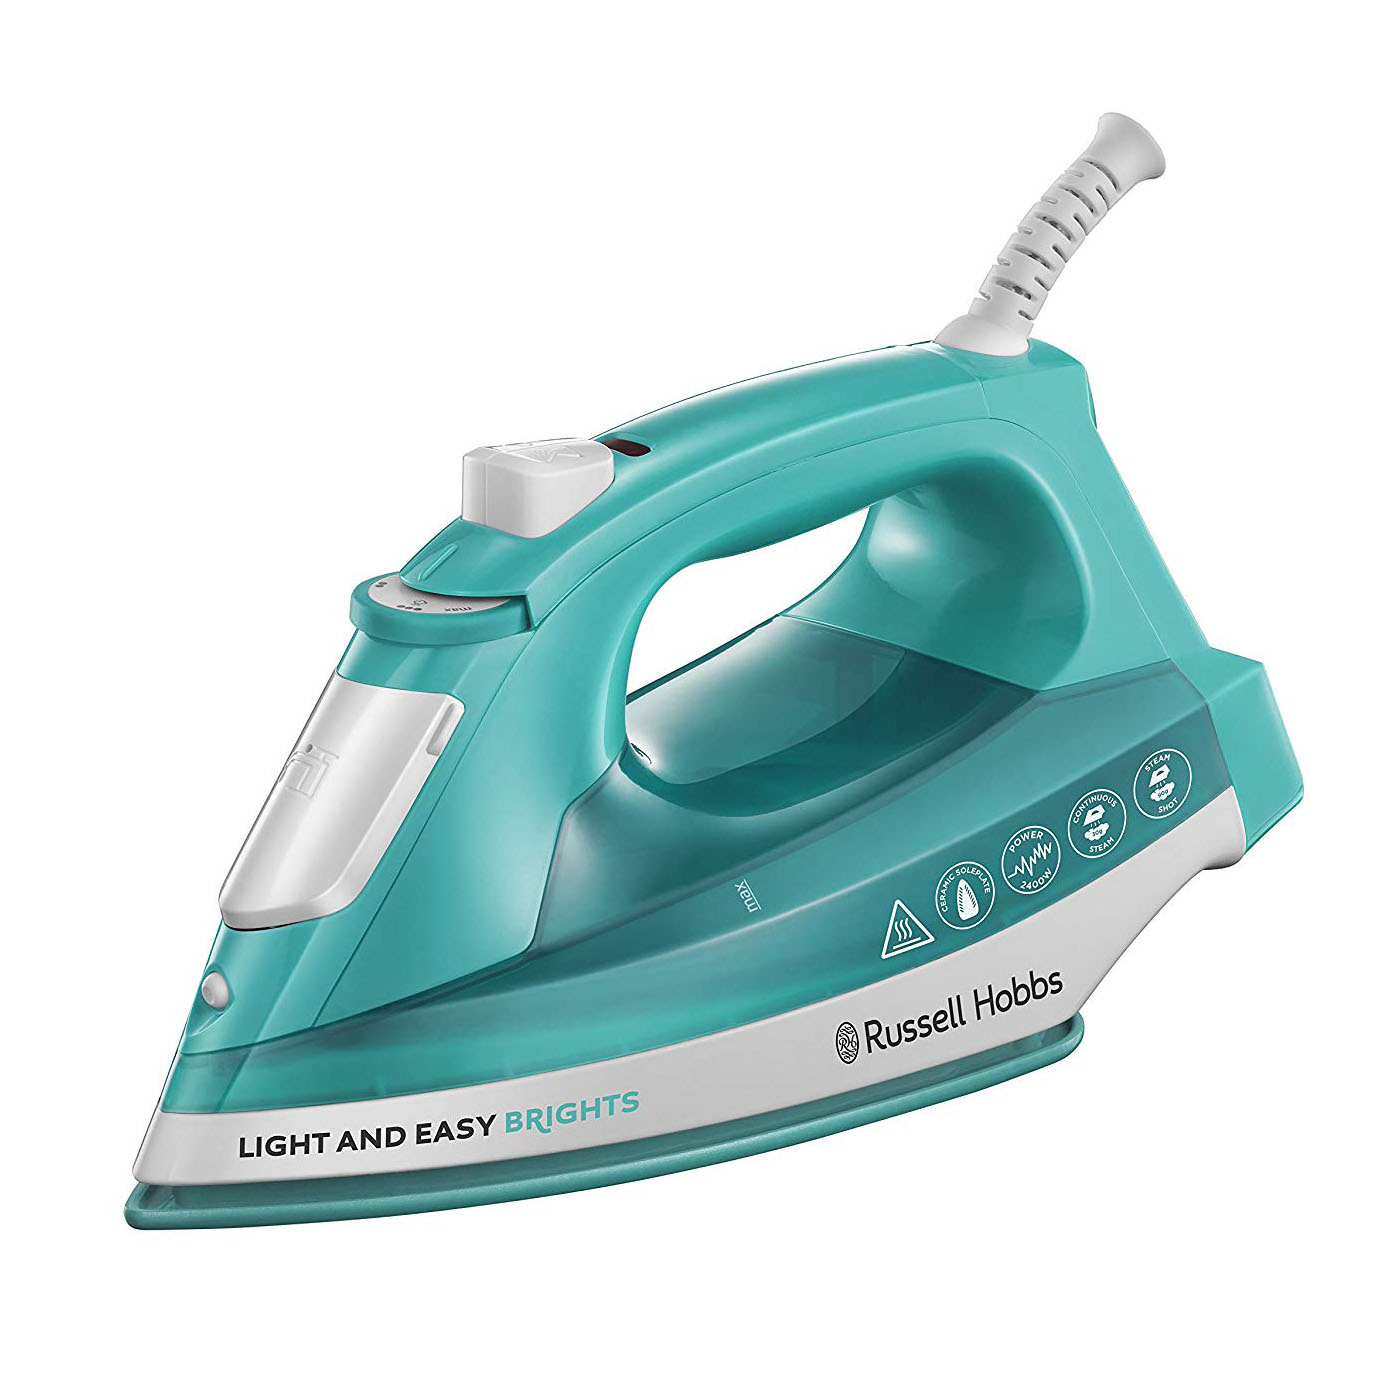 Russell Hobbs 24840 Light and Easy Brights Ceramic Iron - Aqua